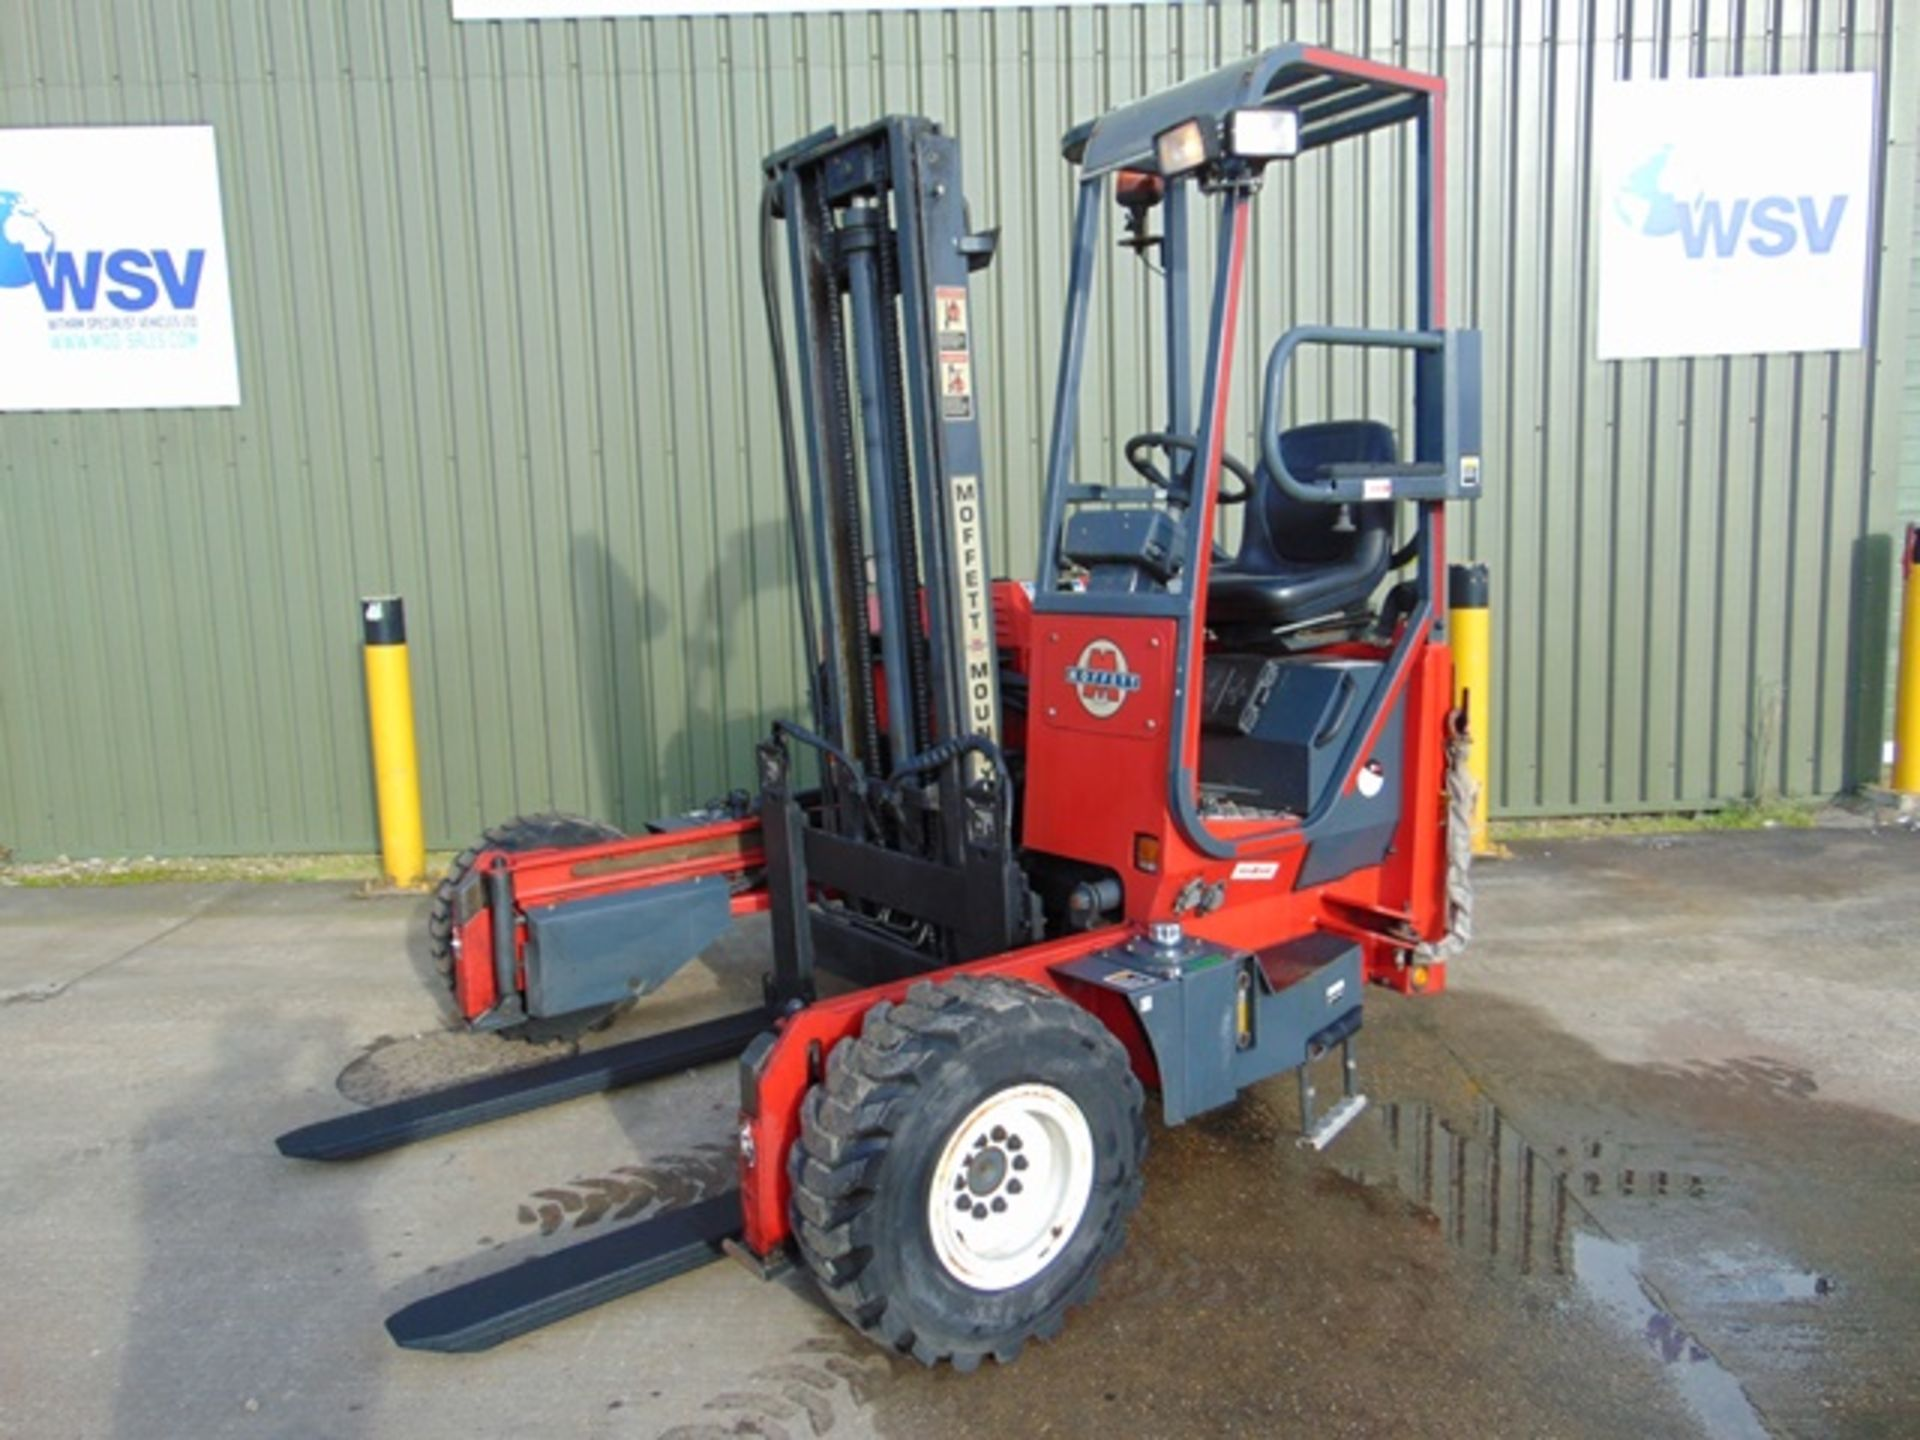 Lot 5 - 2003 Moffett Mounty M2003 Truck Mounted Forklift complete with Meijer Hydraulic Extension Forks